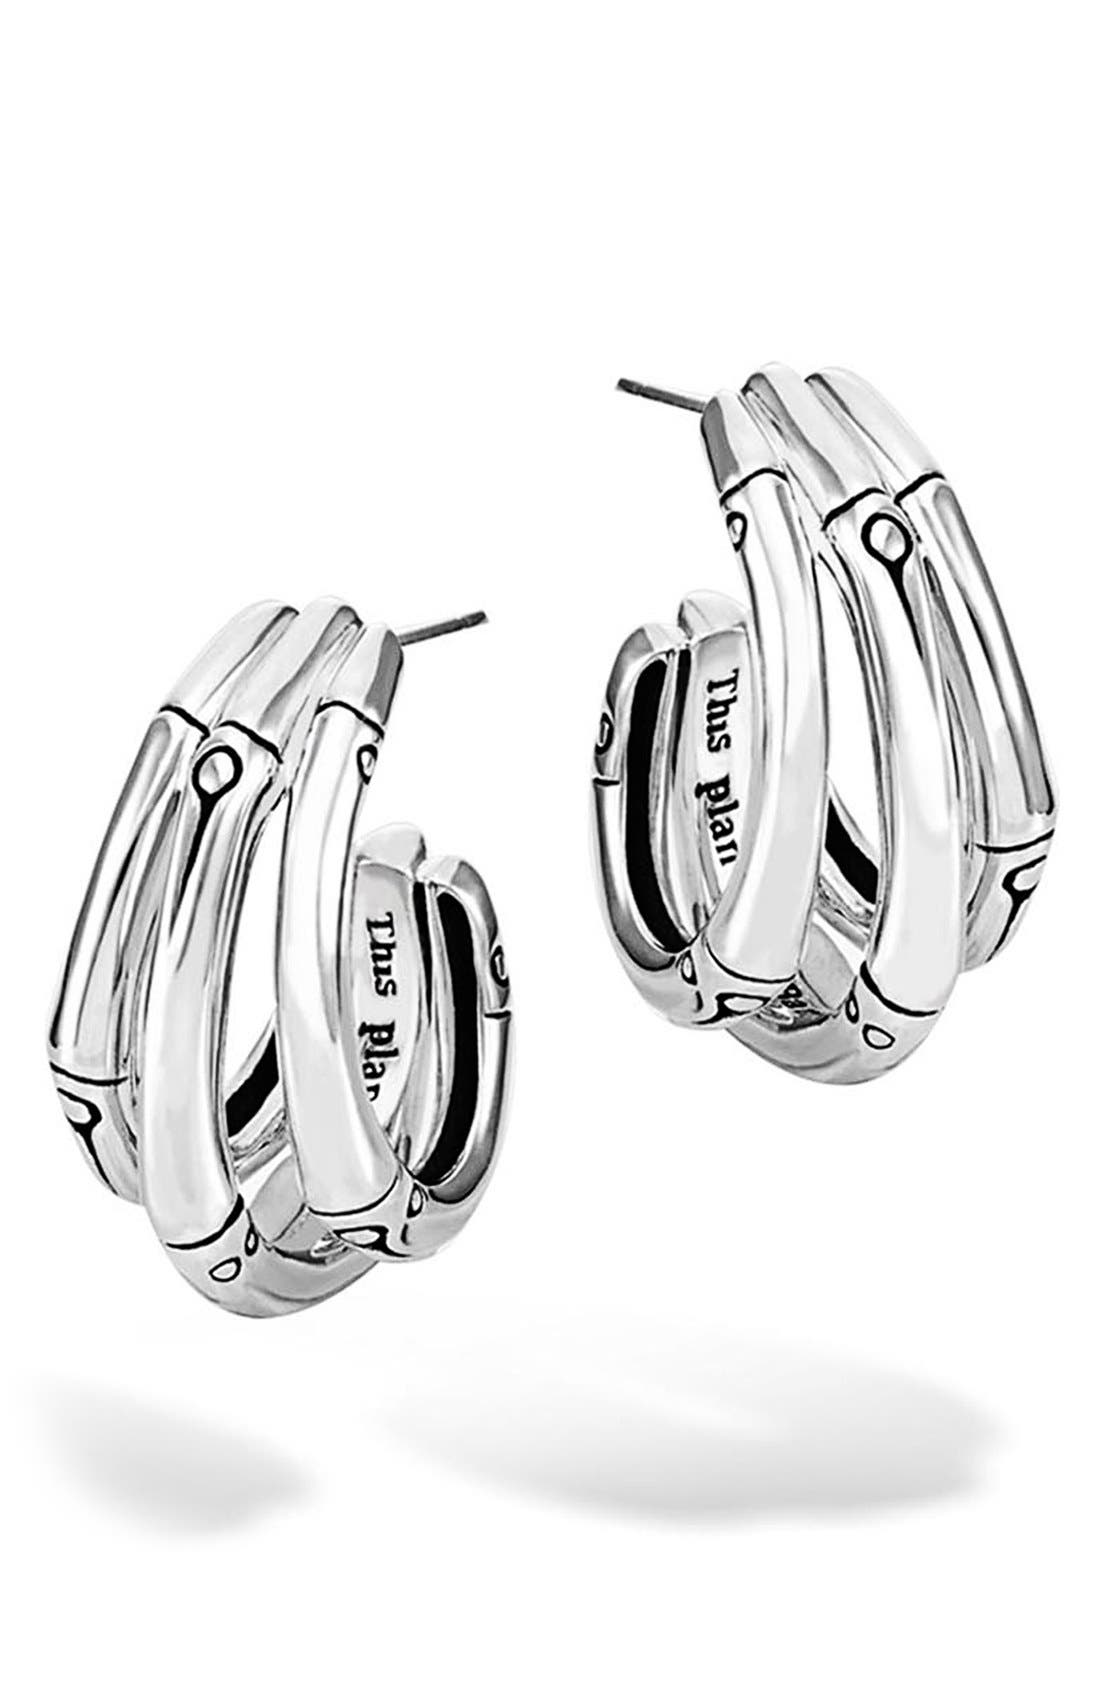 Bamboo Small Hoop Earrings,                             Main thumbnail 1, color,                             Silver